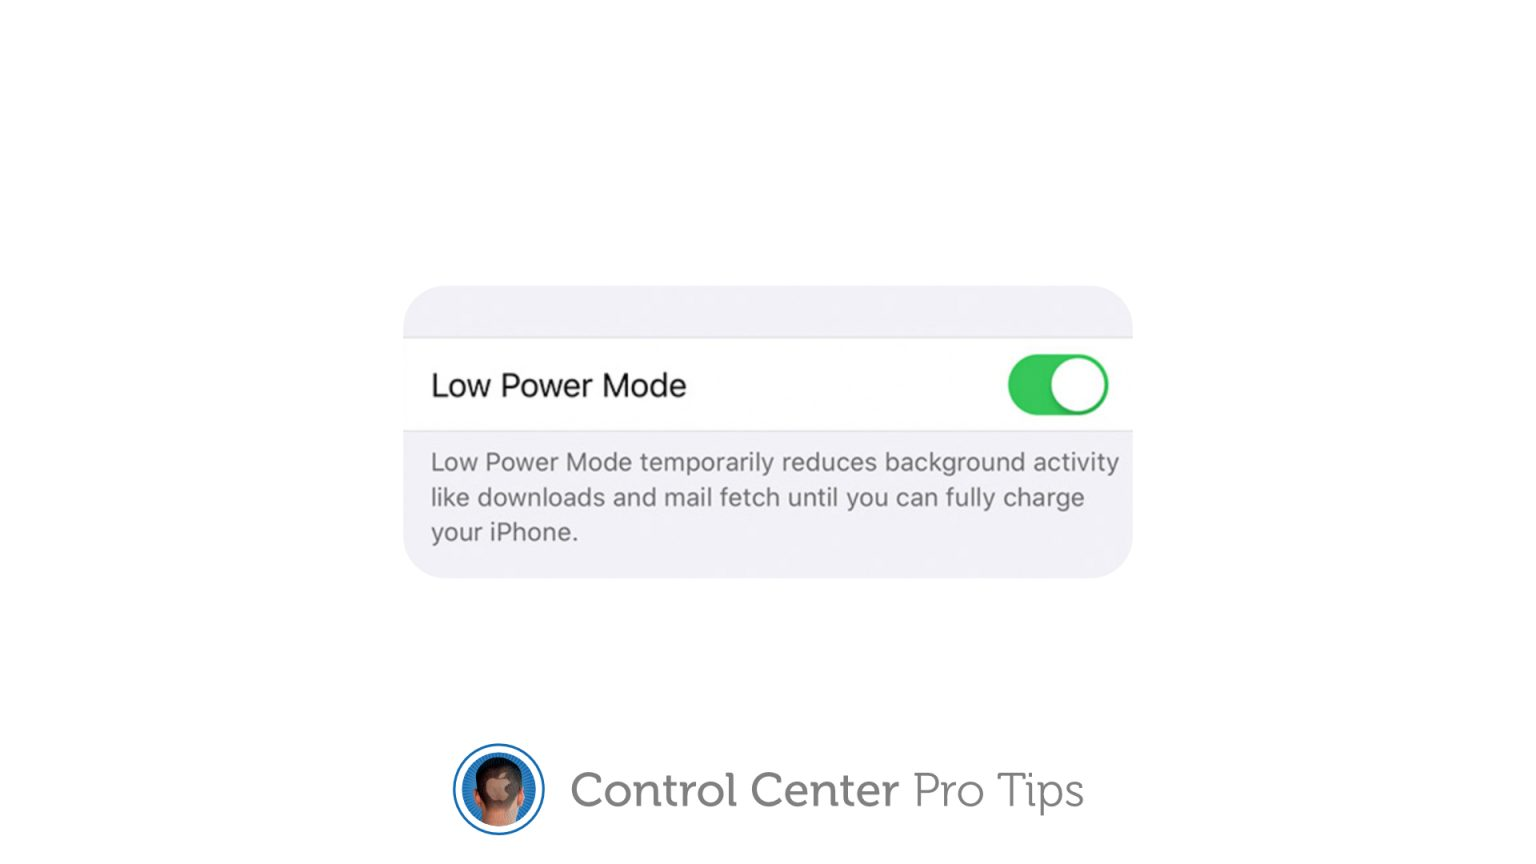 Activate Low Power Mode in Control Center